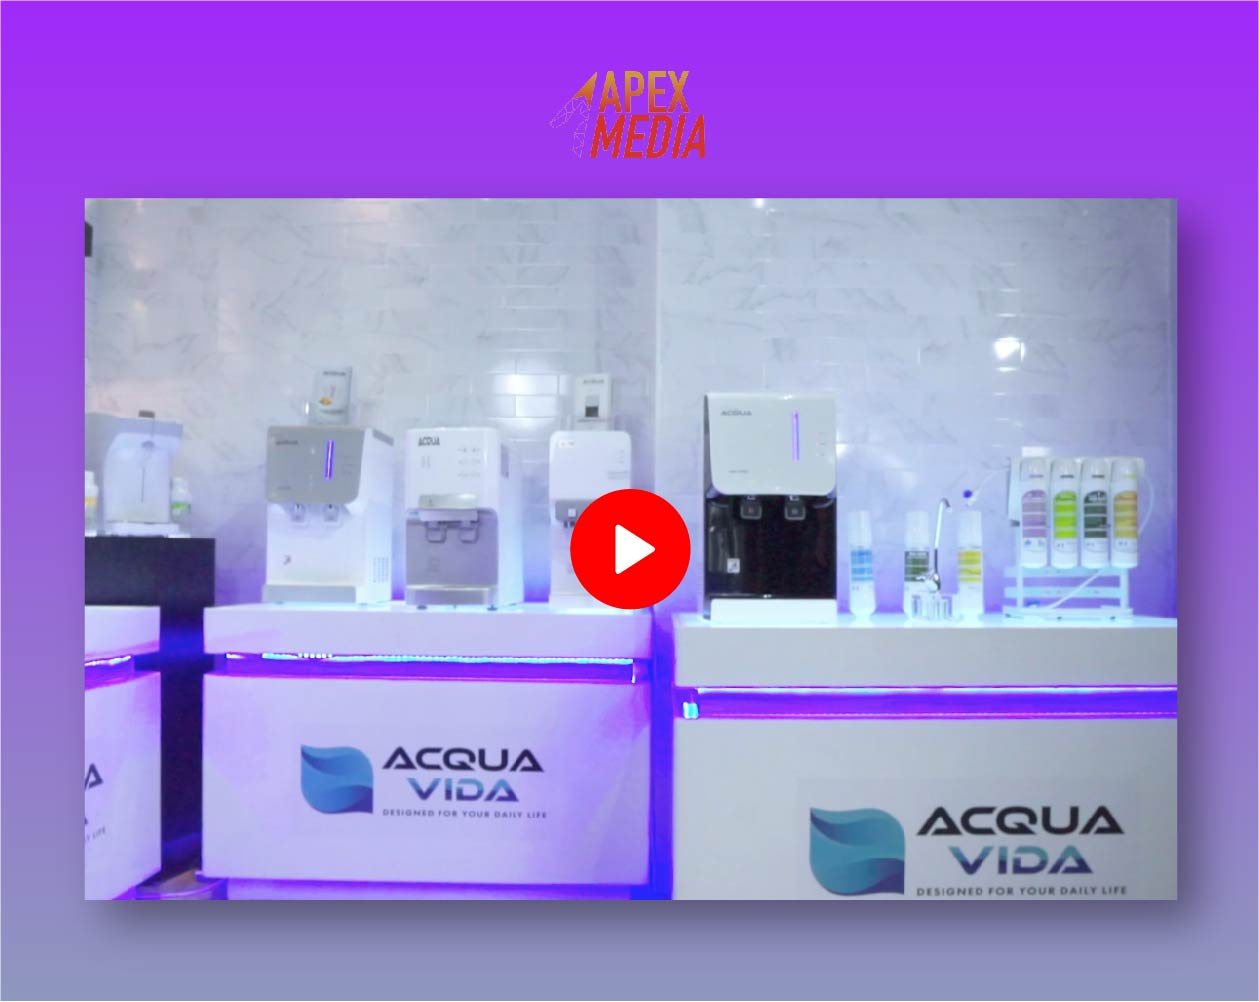 Acqua Vida Product Commercial